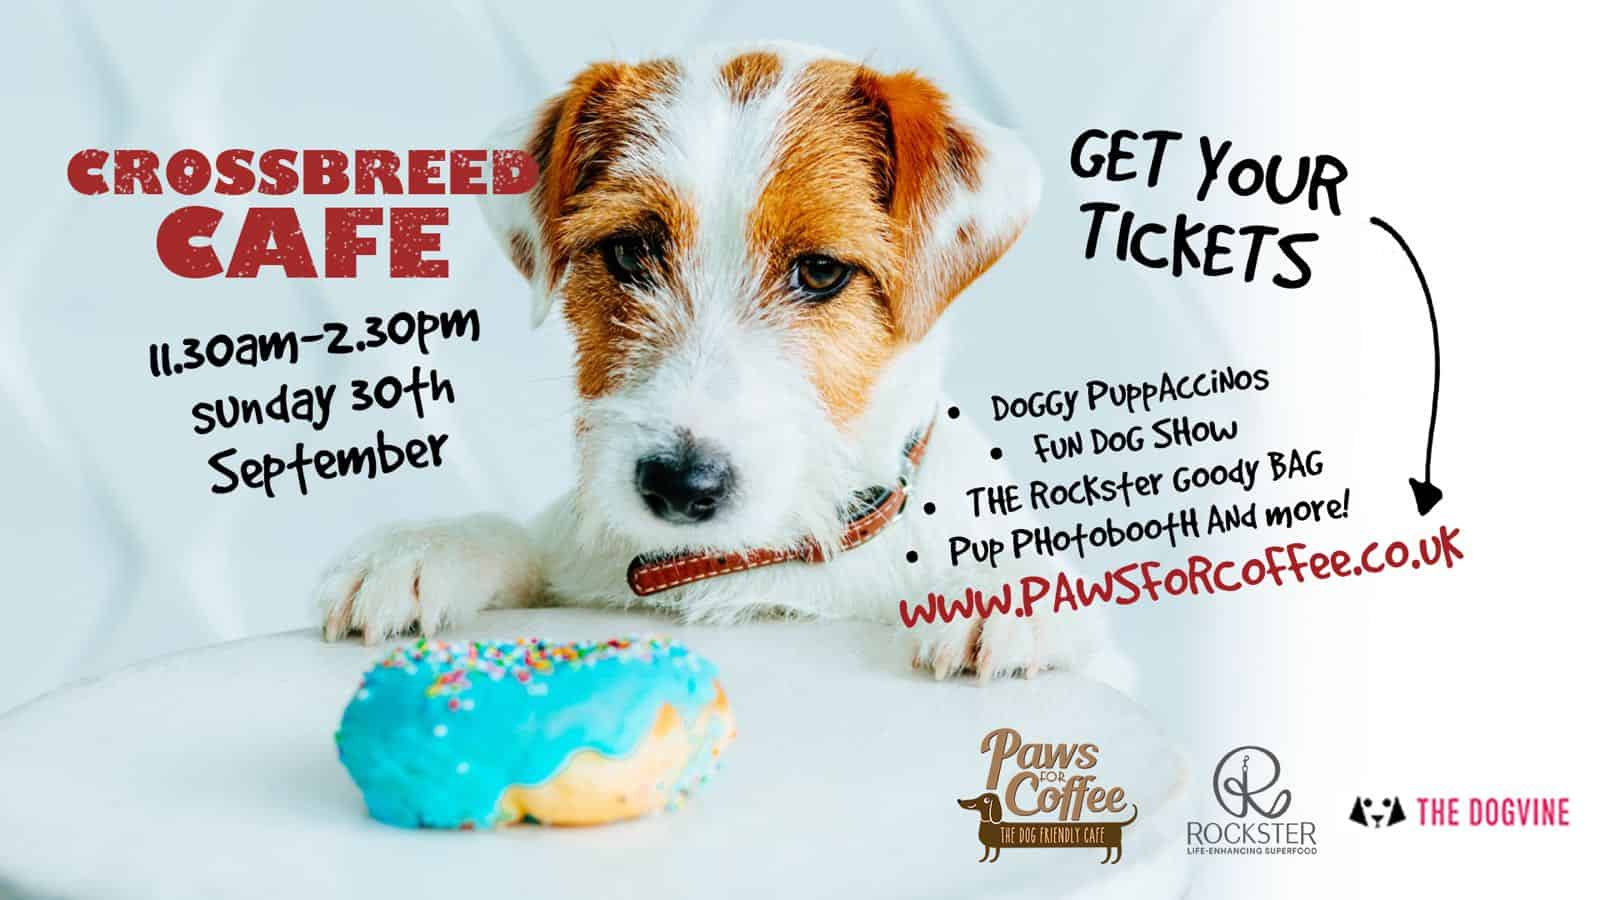 London Dog Events - The Crossbreed Cafe